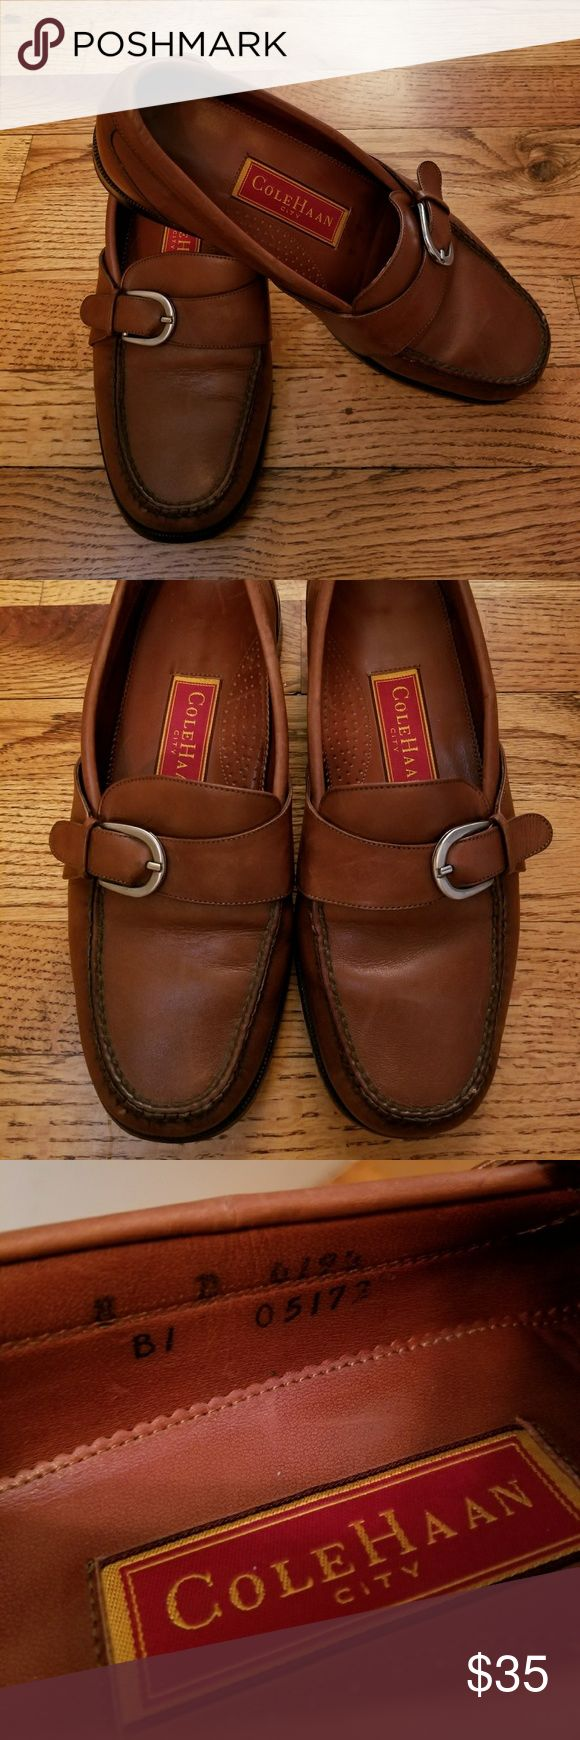 Cole Haan City Loafers Cole Haan City Loafers, Great Used Condition Cole Haan Shoes Loafers & Slip-Ons